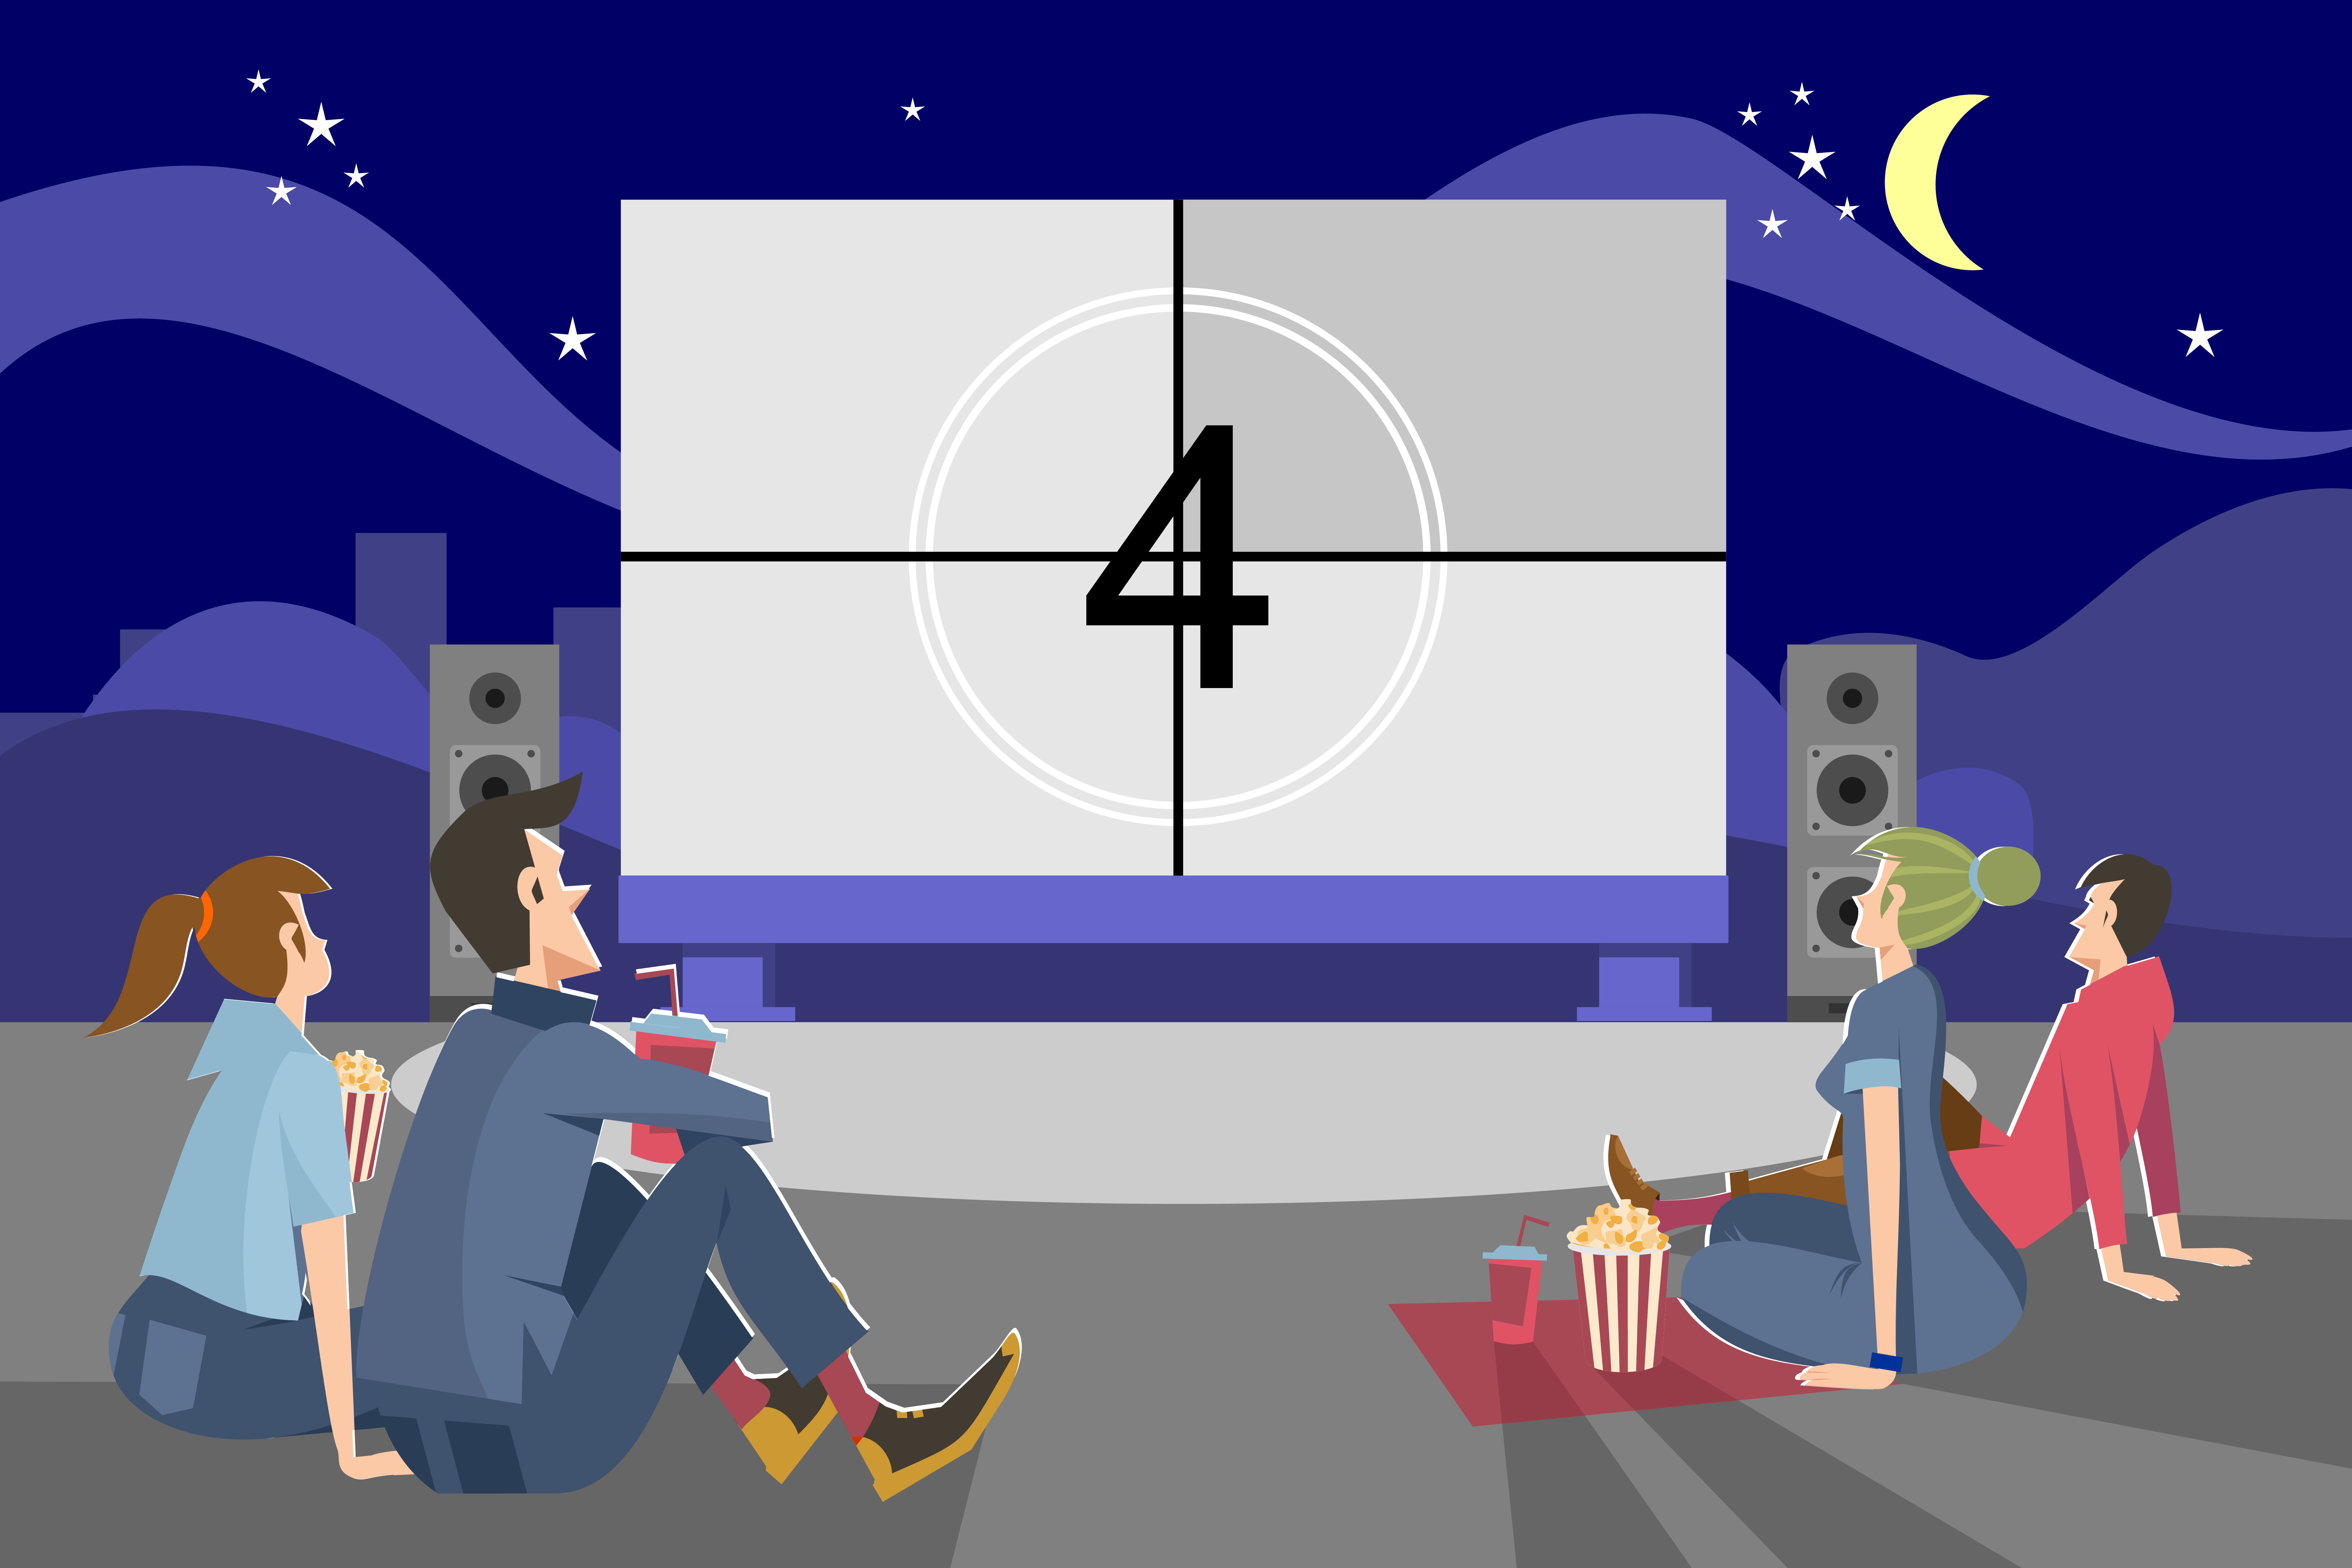 People watching movie outdoors in evening. Couples dating in open air cinema theater and sitting at big screen. Vector illustration for night, weekend, entertainment, romance concept